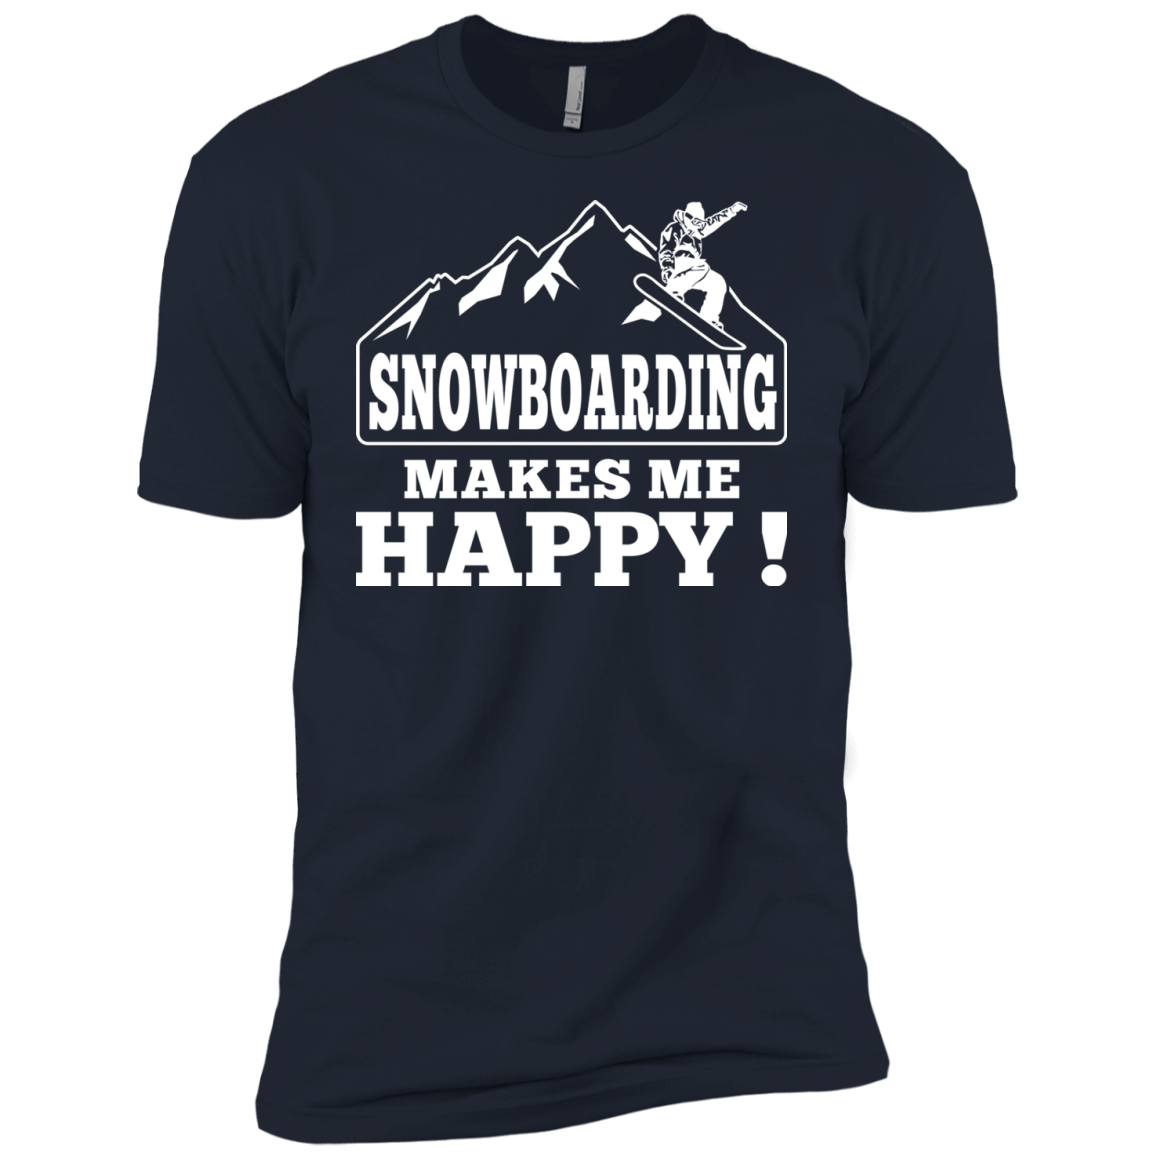 Snowboarding Makes Me Happy Youth T-Shirt - Powderaddicts